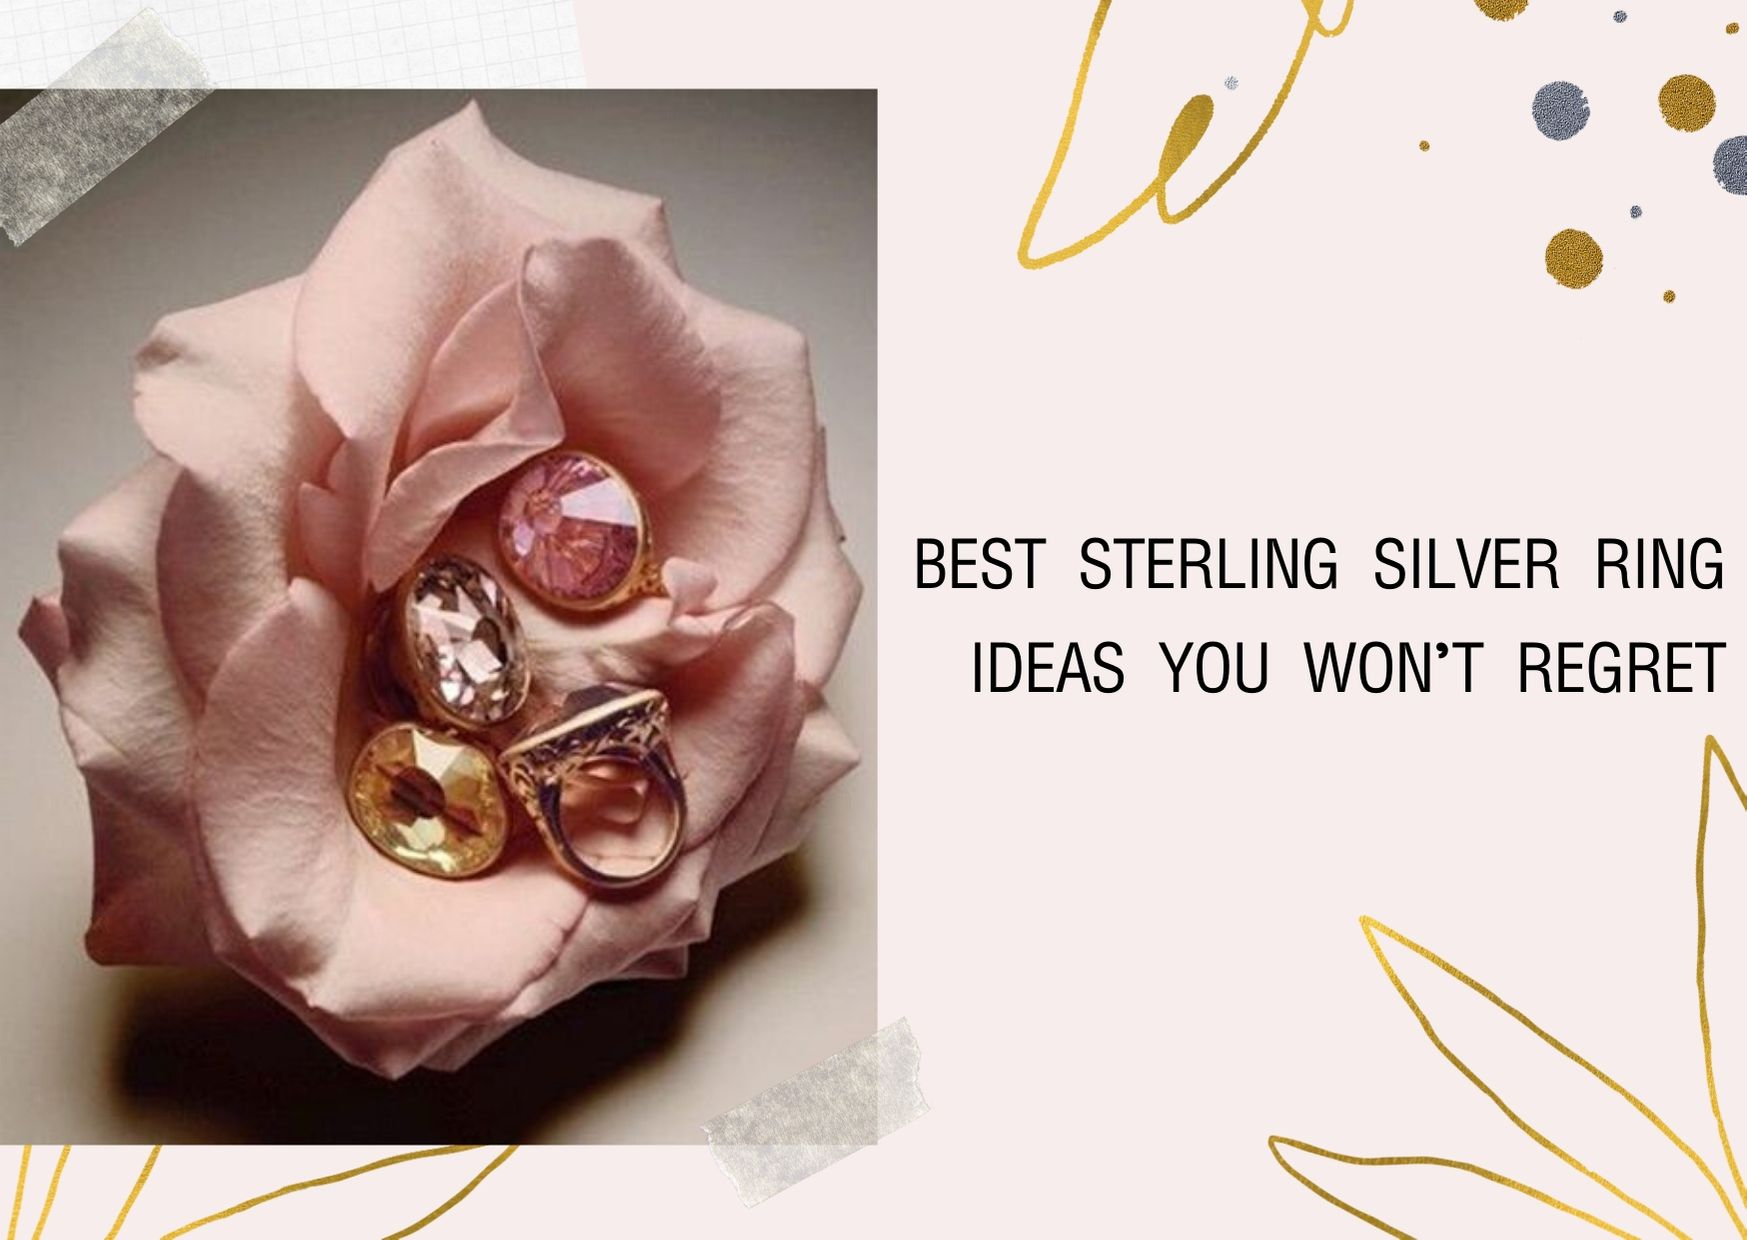 Best Sterling Silver Ring Ideas You Won't Regret